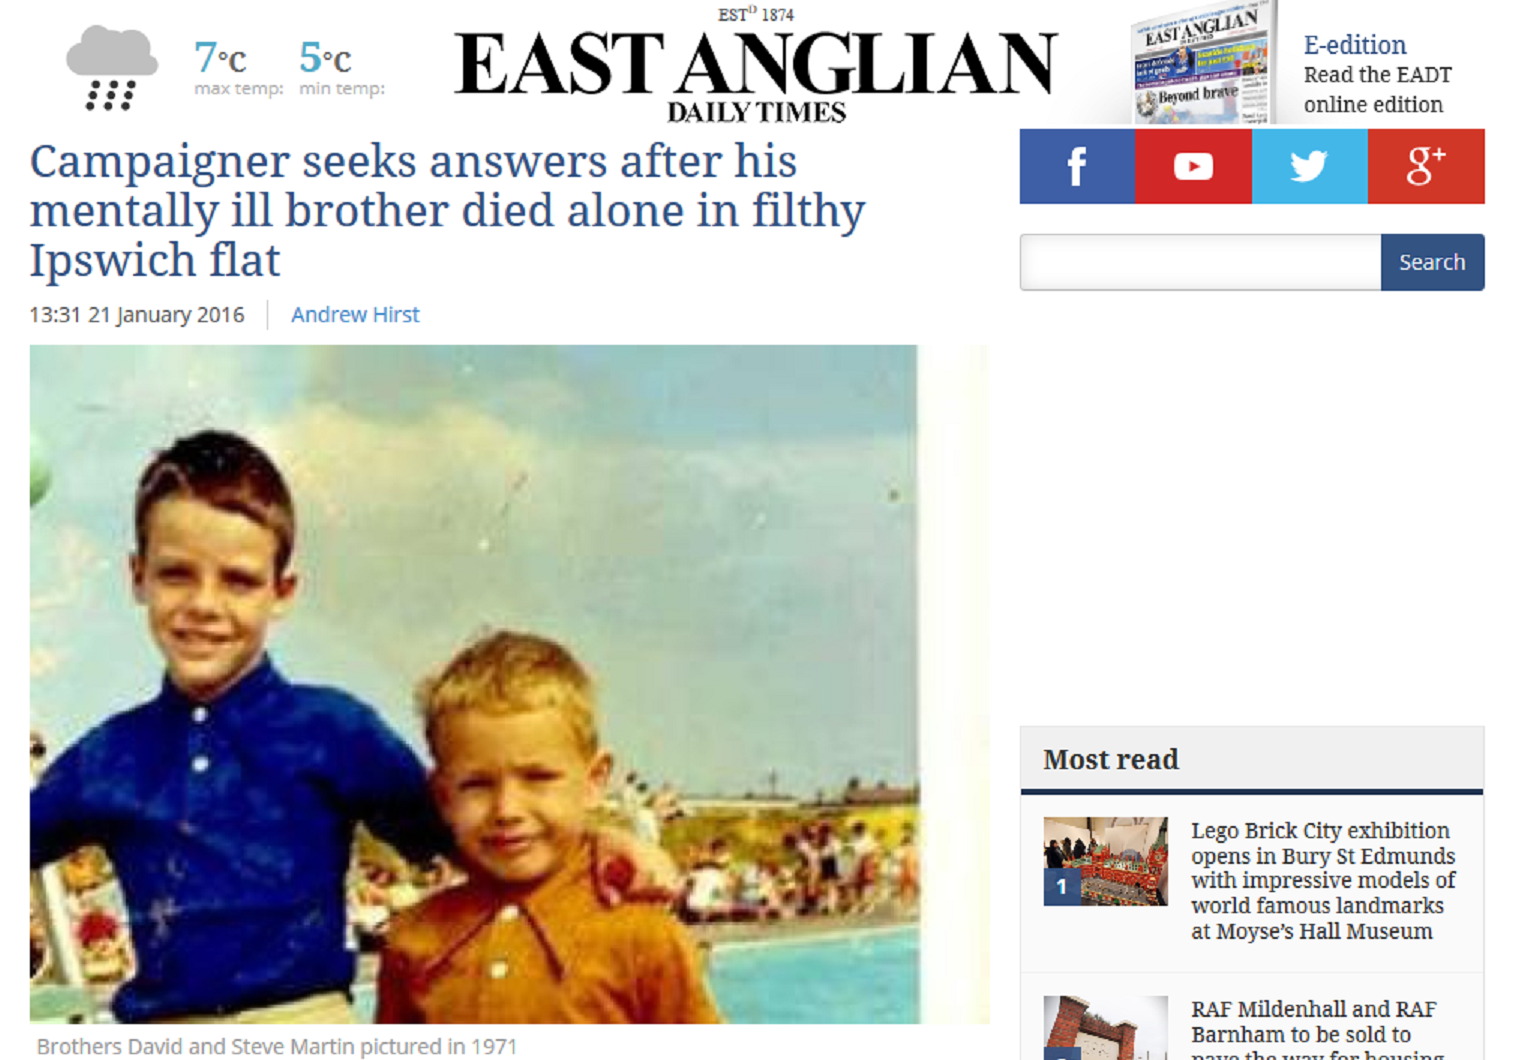 EADT Campaigner seeks answers after his mentally ill brother died alone in filthy Ipswich flat